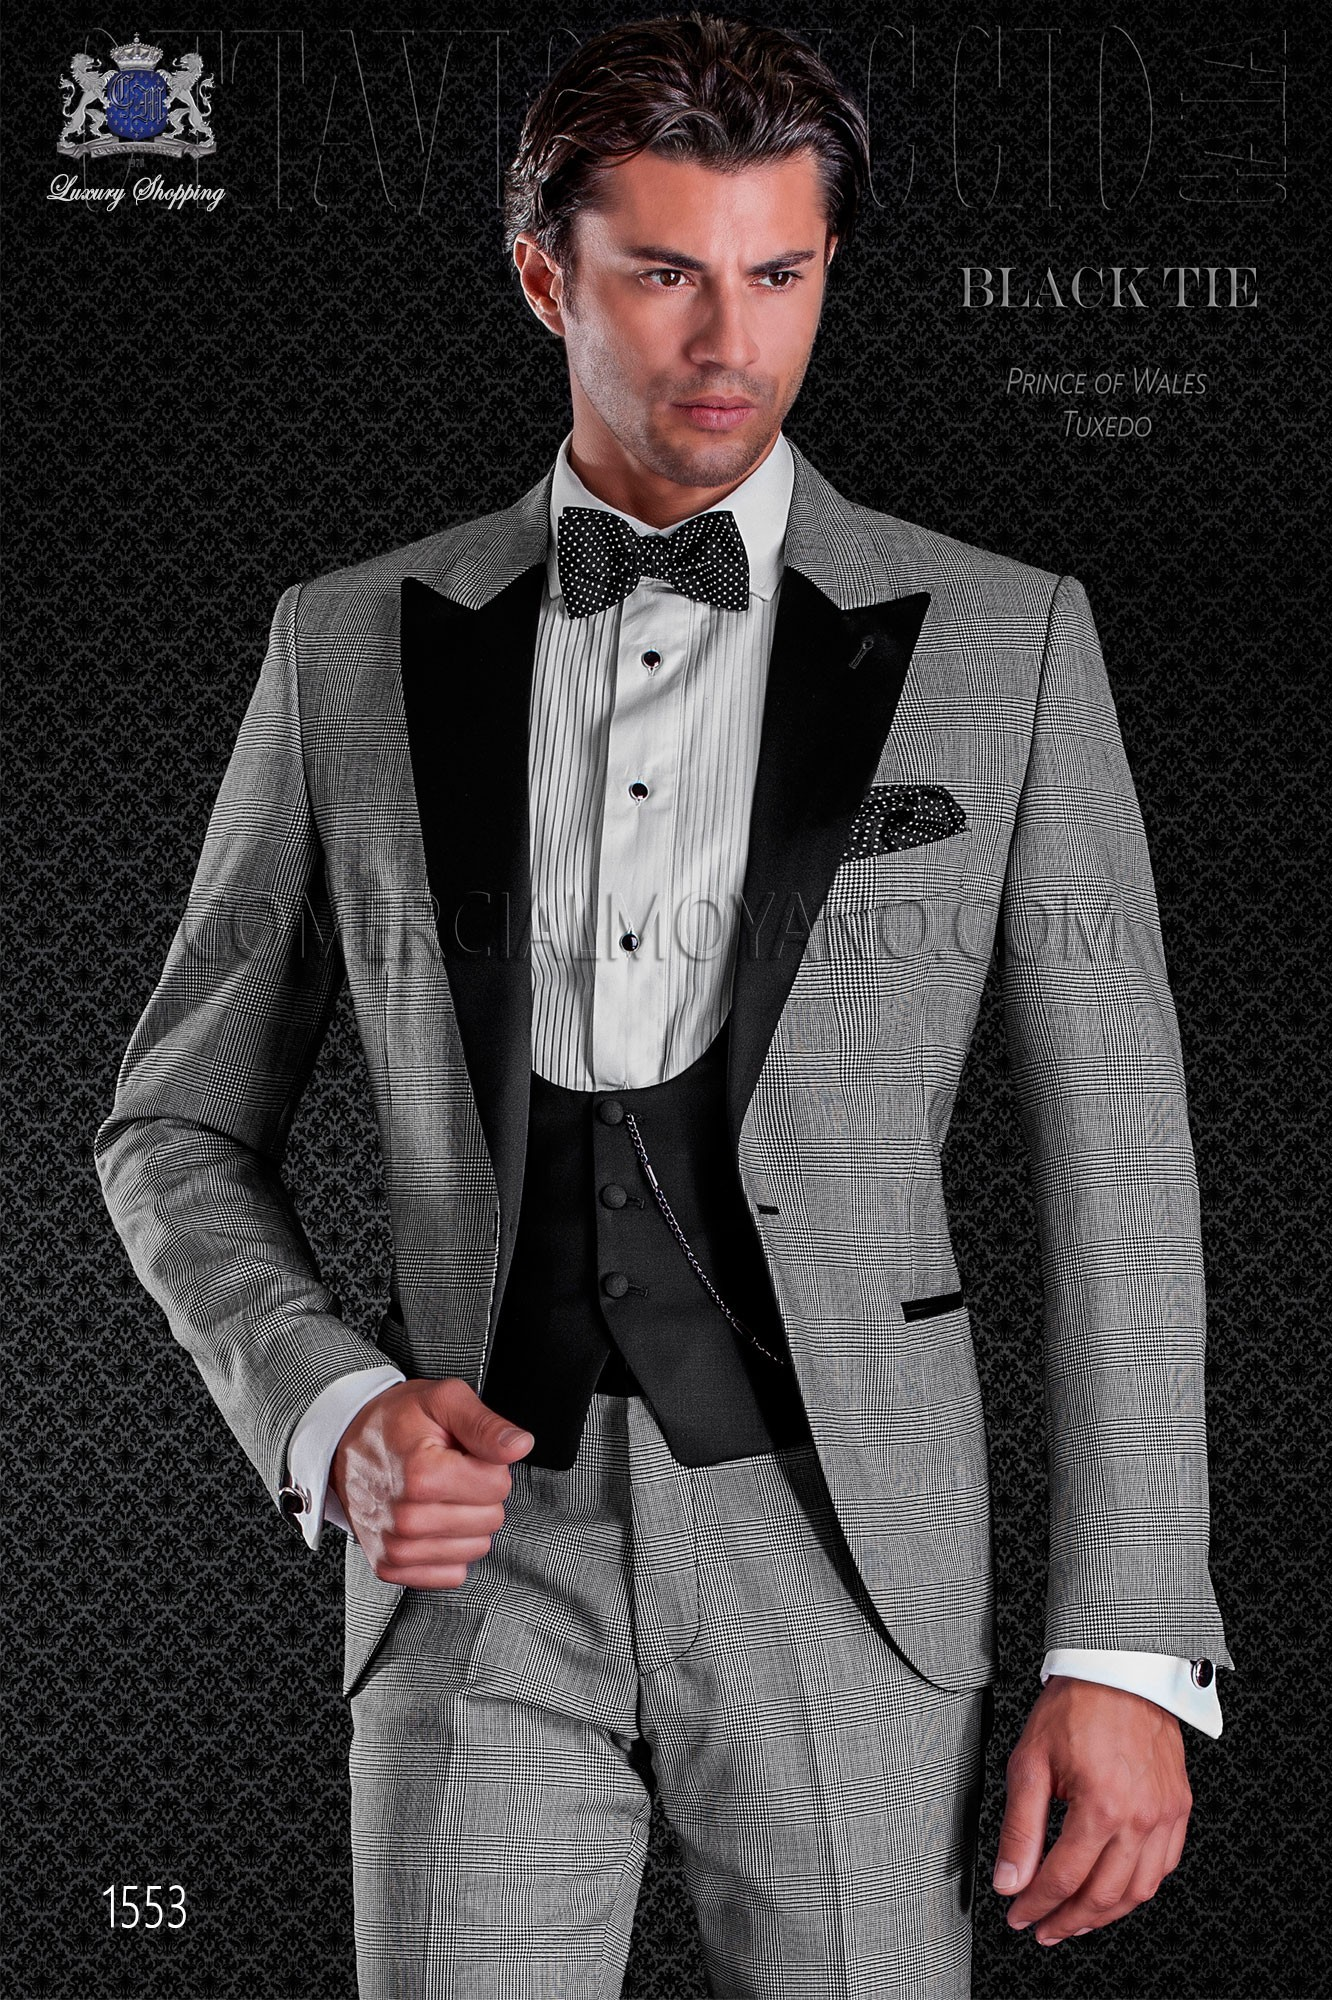 a0a8d1f55f2 Peak lapels and 1 button. Wool mix fabric. Italian prince of wales tuxedo.  Elegance and excellence in evening dress for men. Loading zoom